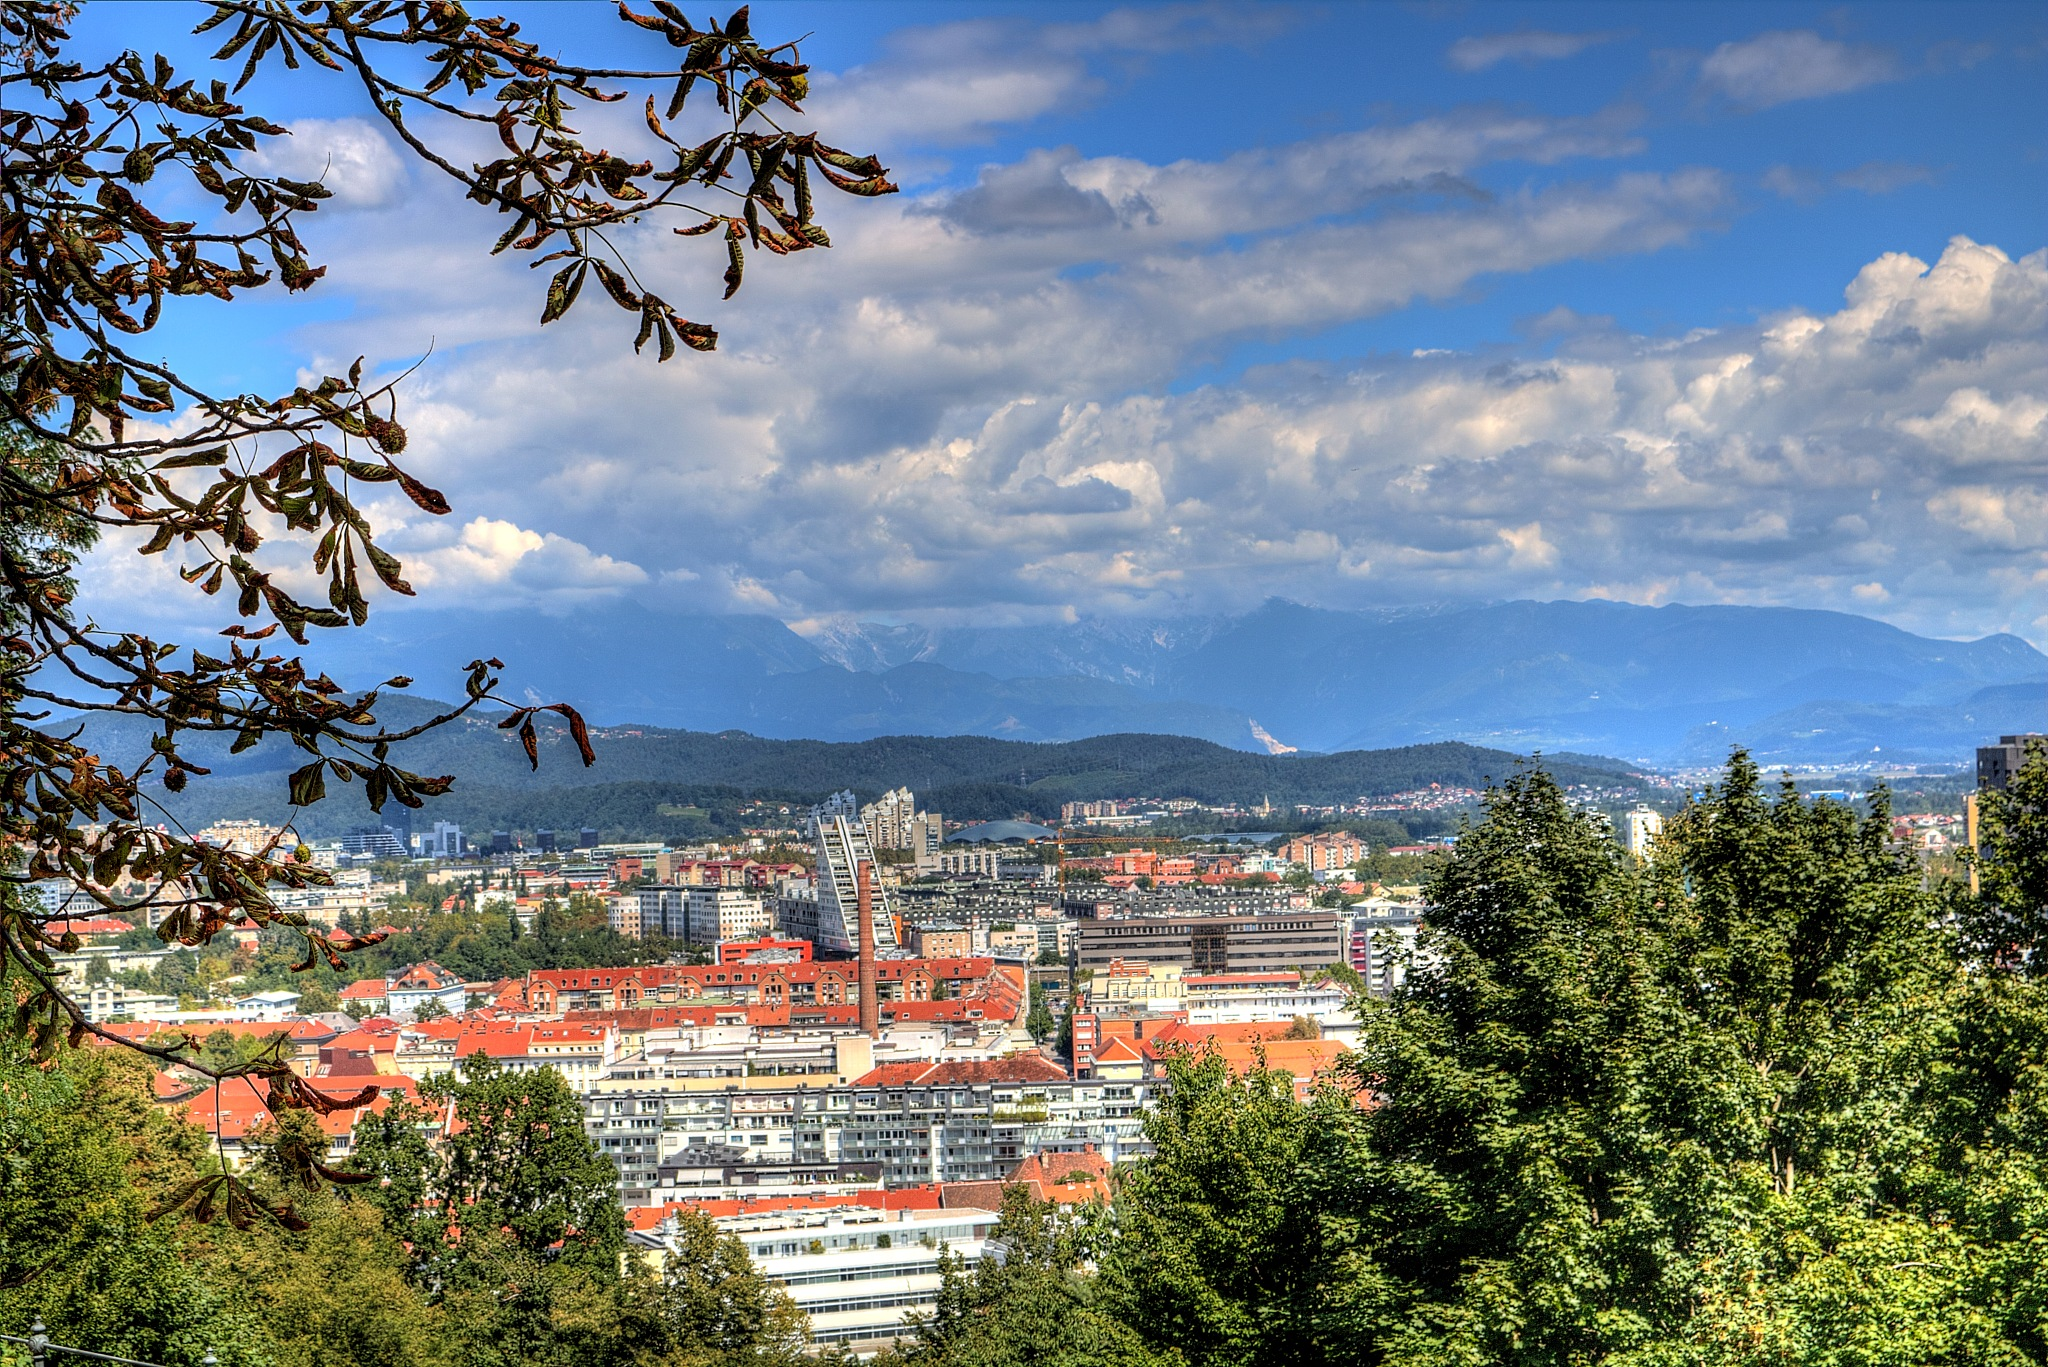 Panorama Ljubljana by zvnktomasevic